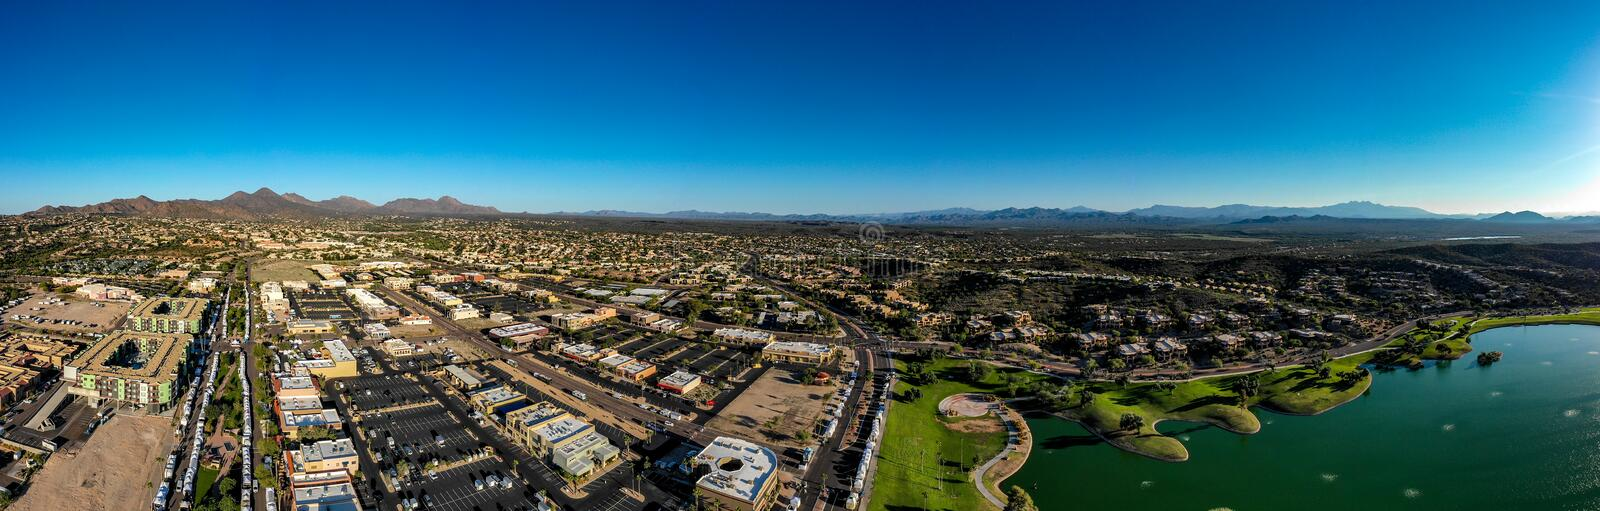 Aerial, Drone, Panoramic View of Fountain Hills, Arizona royalty free stock photography